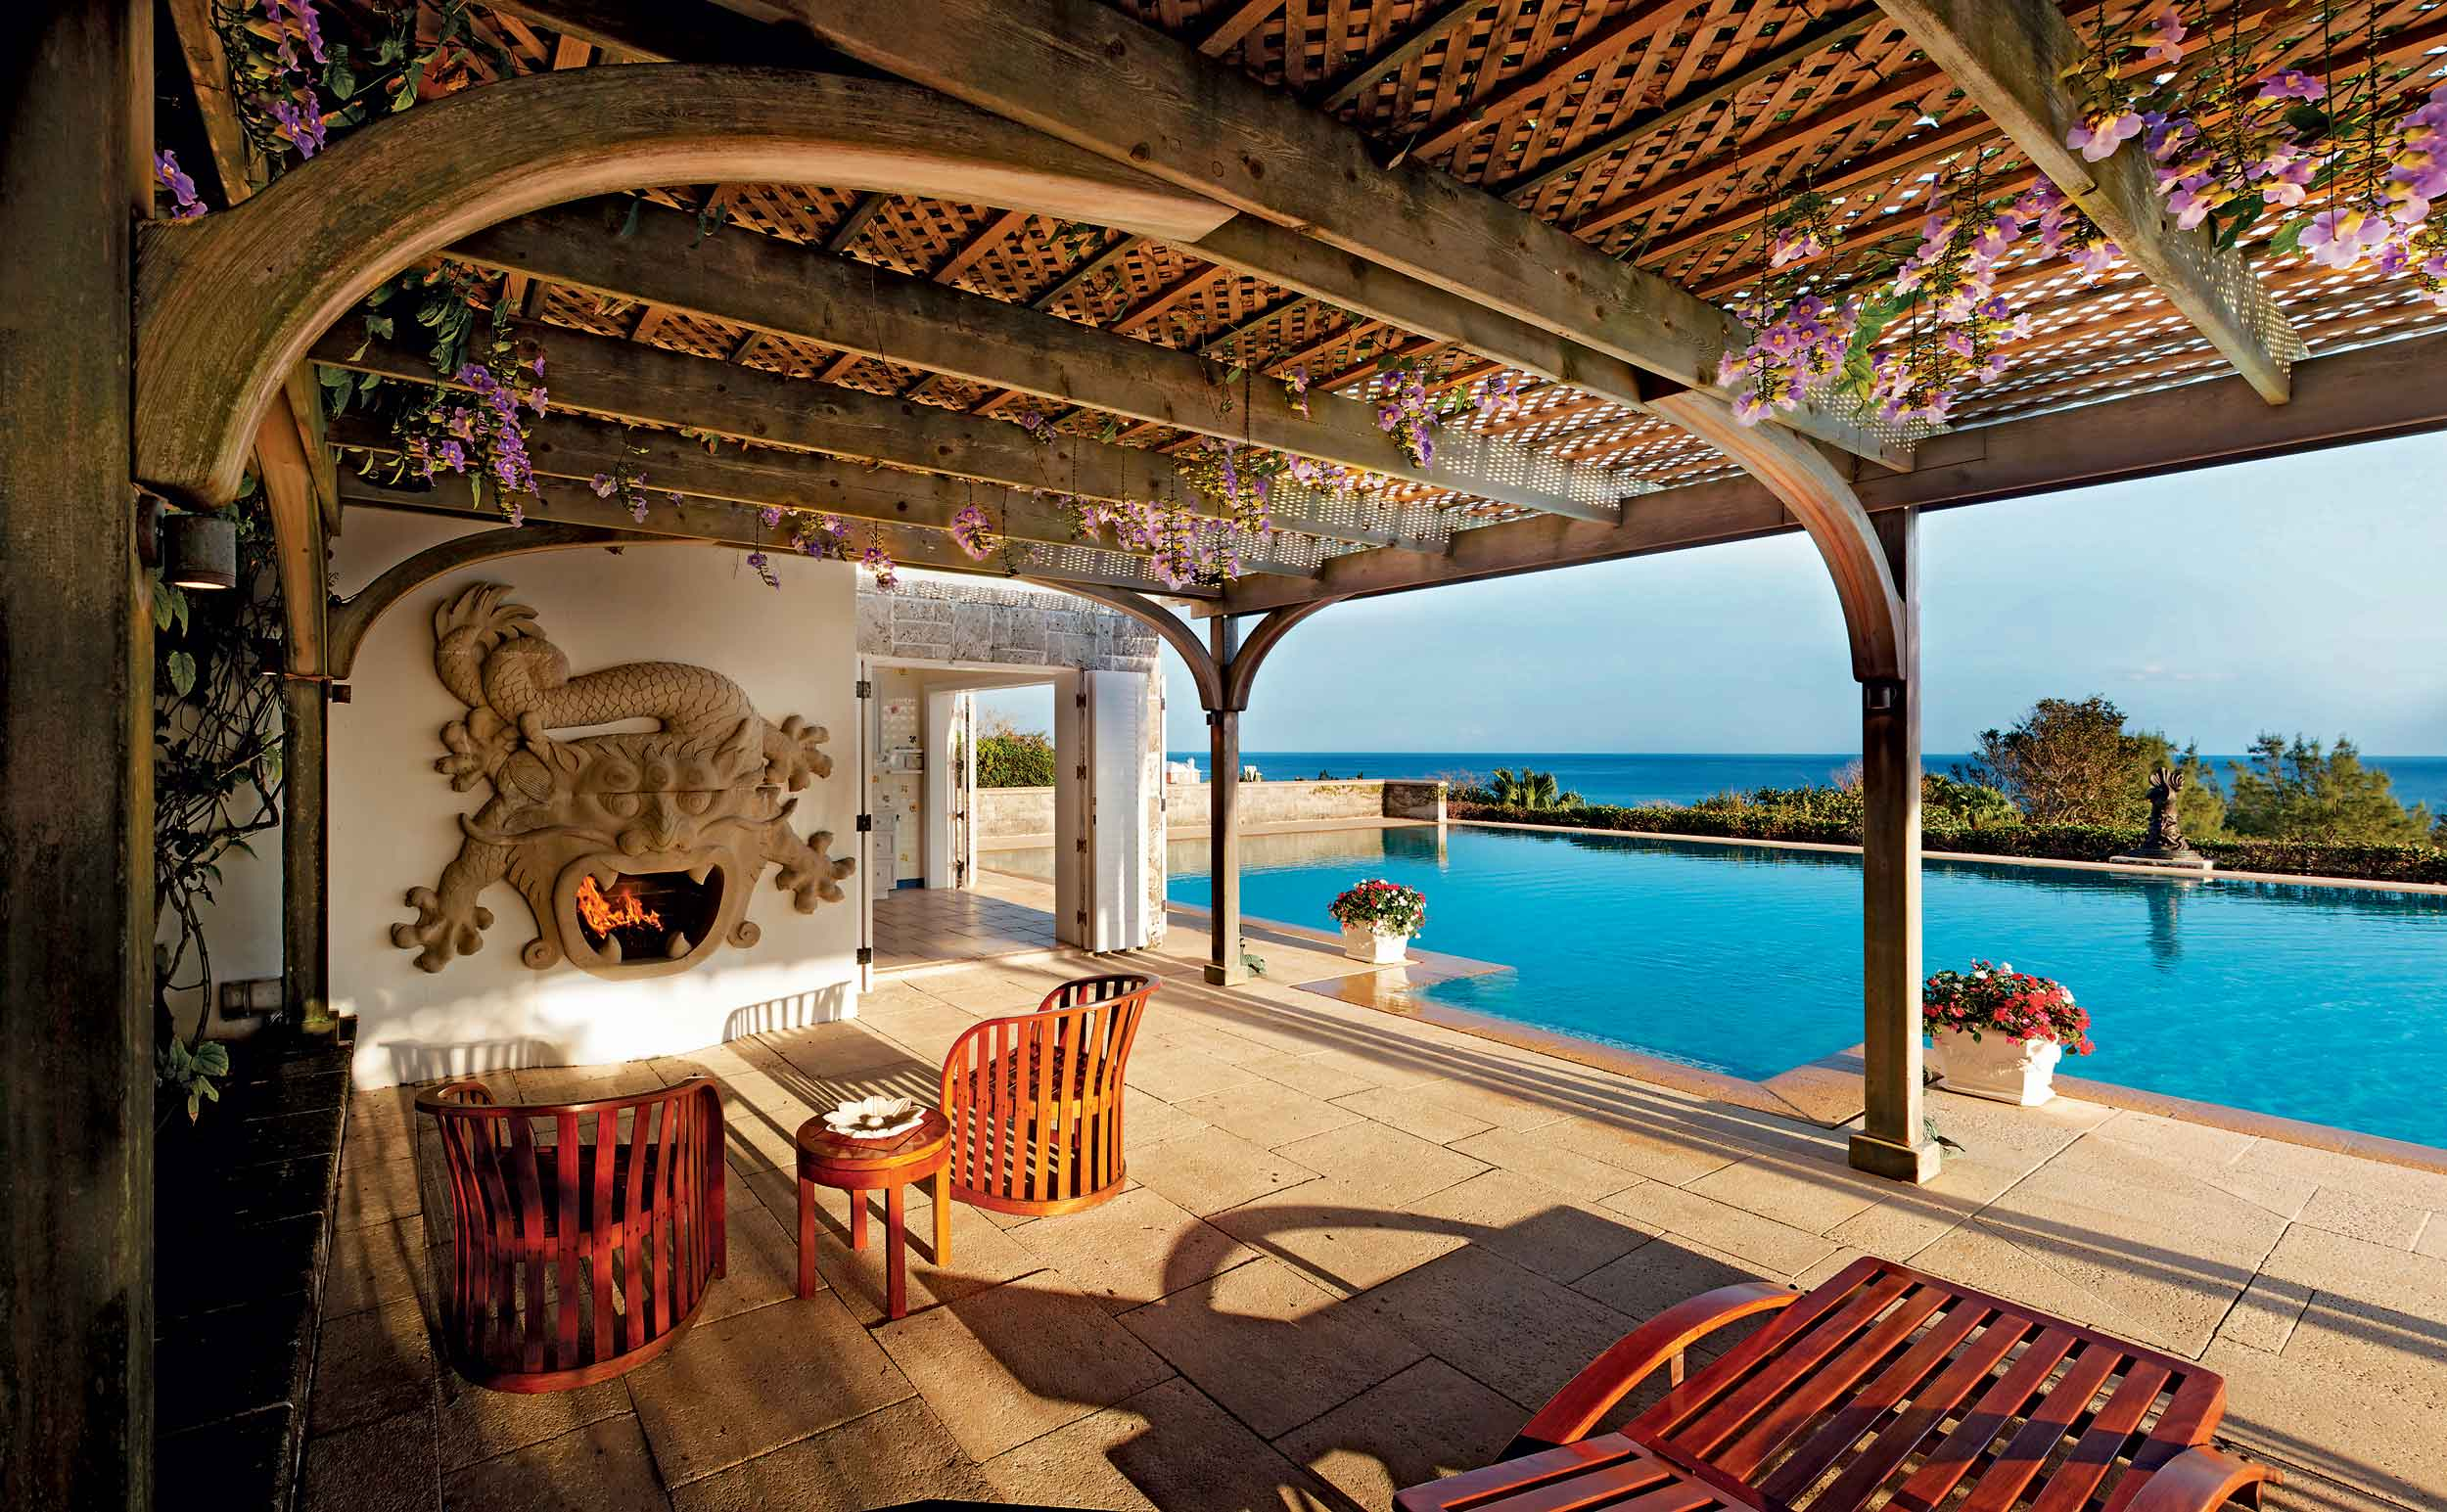 A rare Chinese stone fireplace in the shape of a five-armed dragon forms the centerpiece of the pergola, which faces the infinity pool and the Atlantic Ocean beyond.